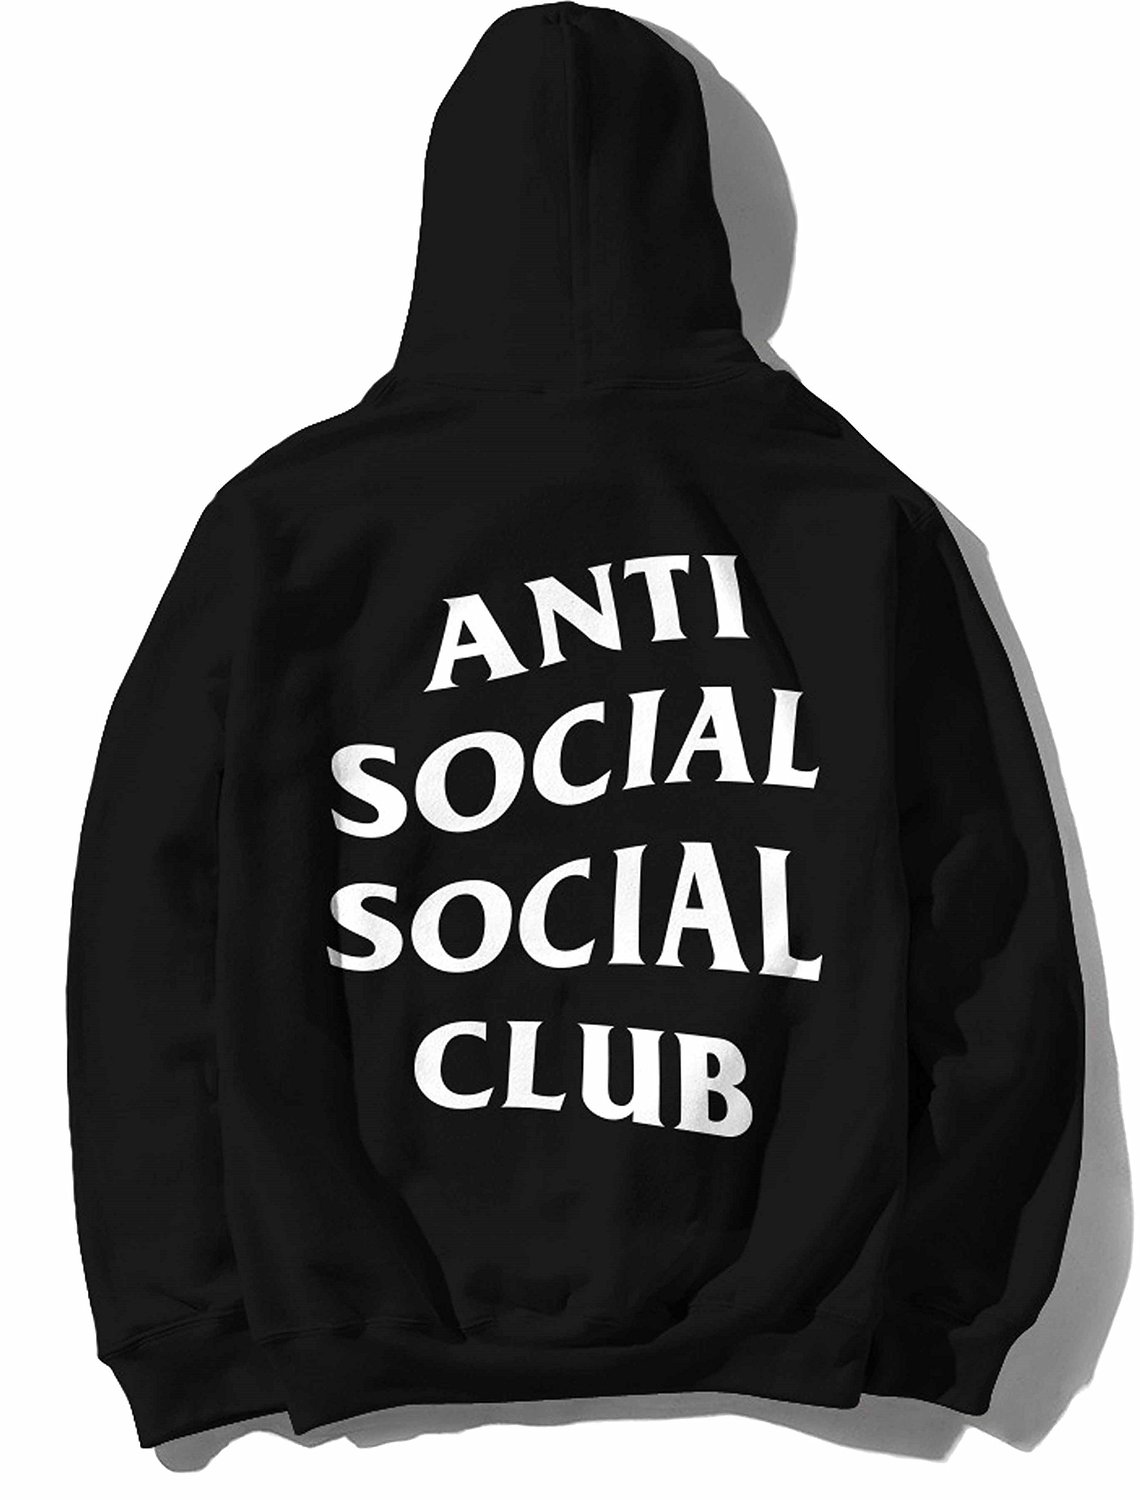 49fd58fb0fed AntiSocial Social Club Hoodie Black at Amazon Men s Clothing store